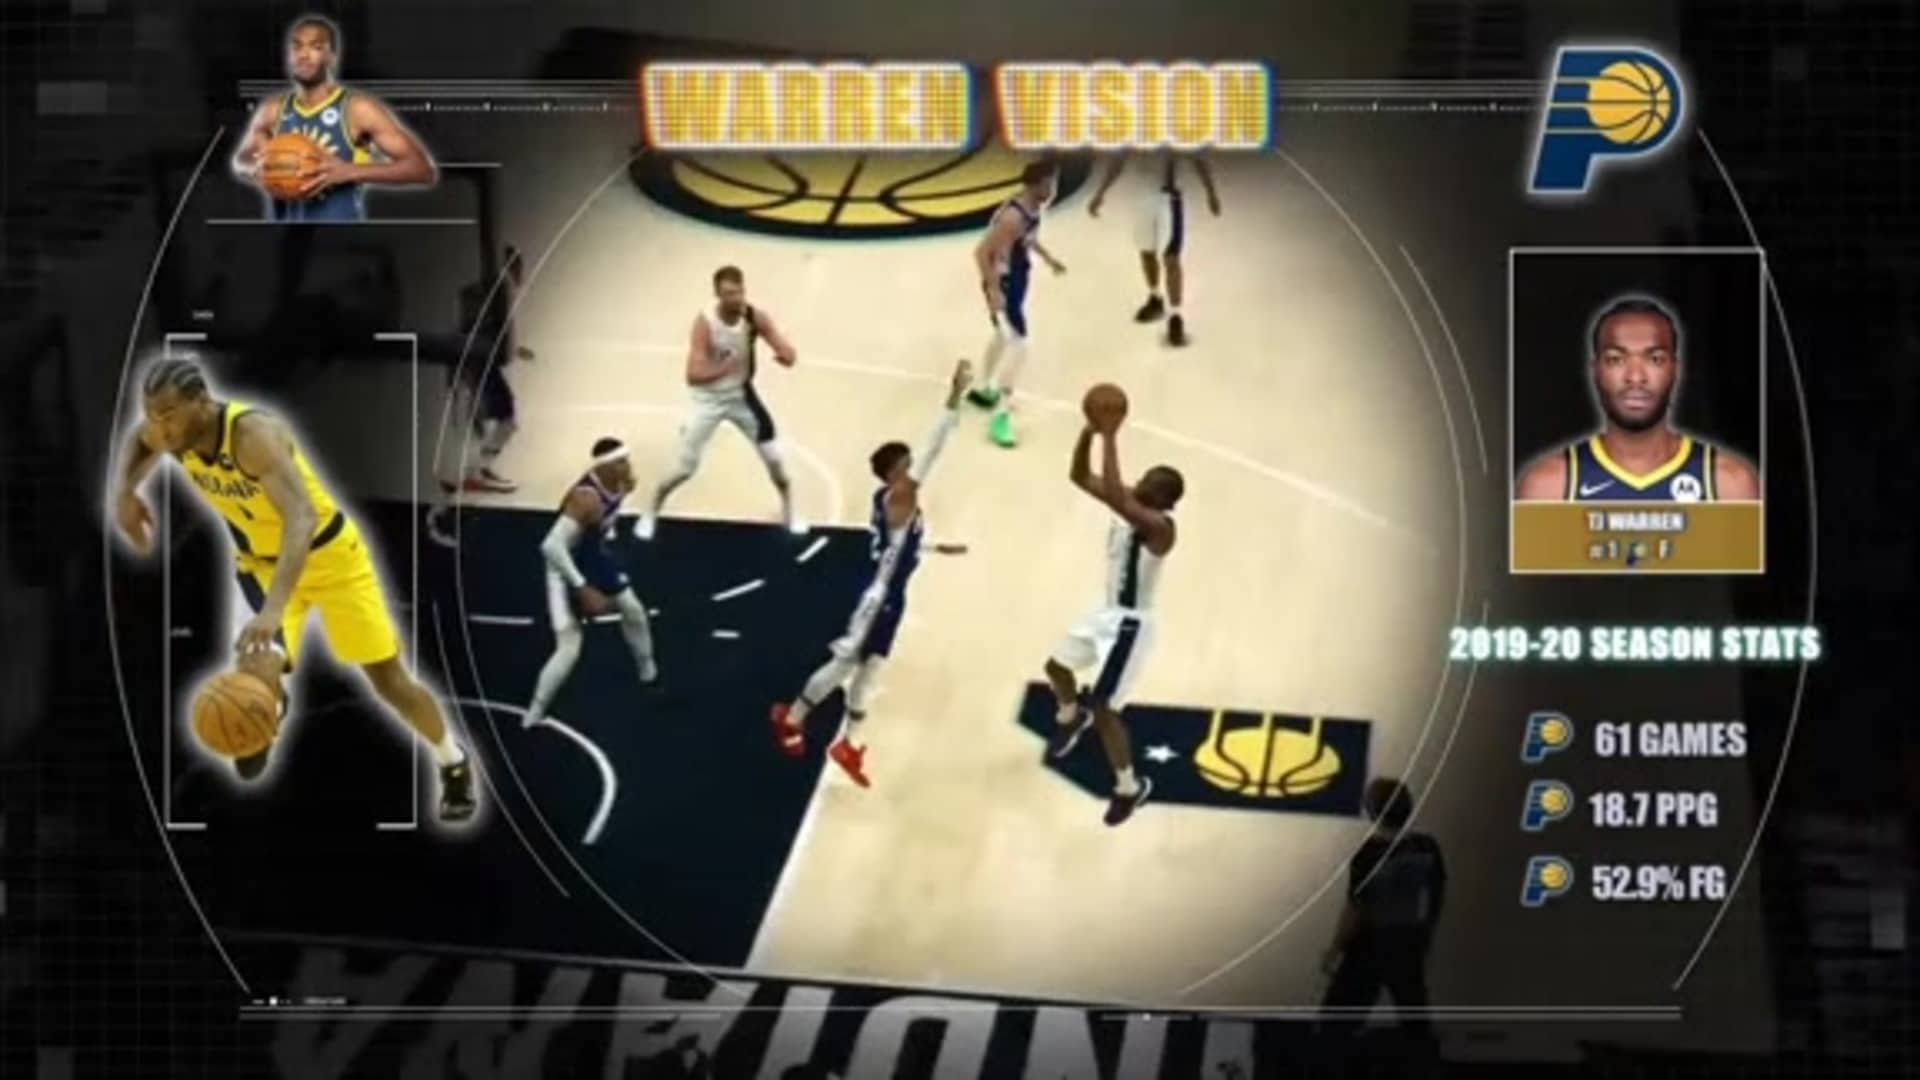 Intel TrueView: T.J. Warren